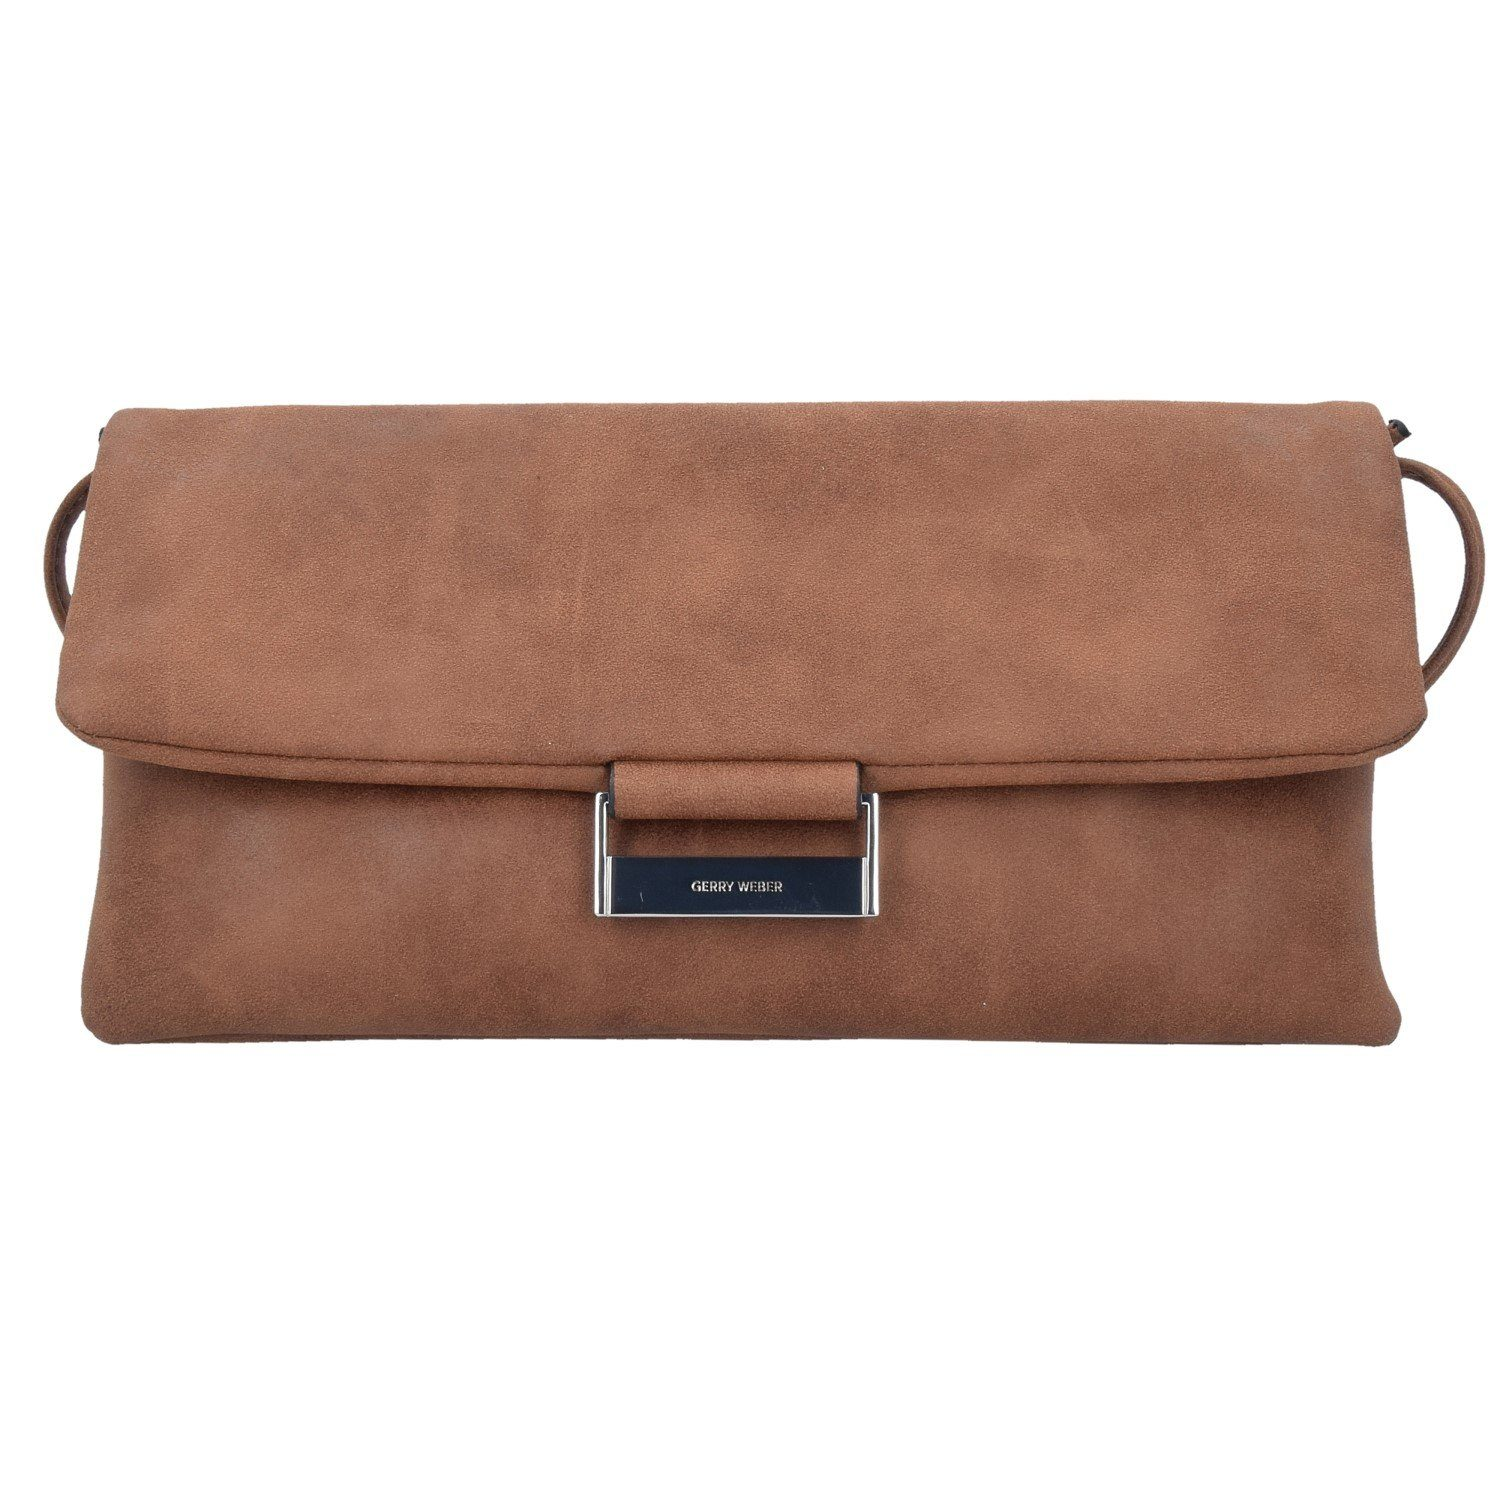 Gerry Weber Be Different Clutch 28 cm